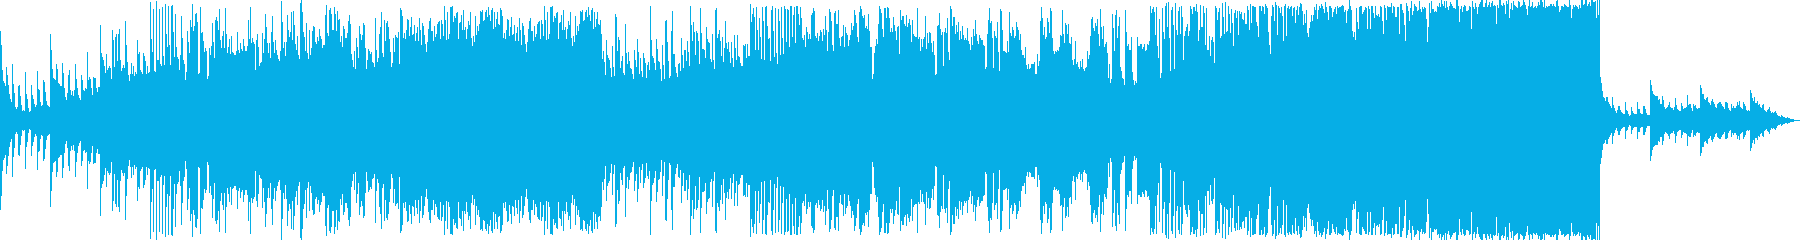 Rocky BGM with a powerful and challenging image's reproduced waveform